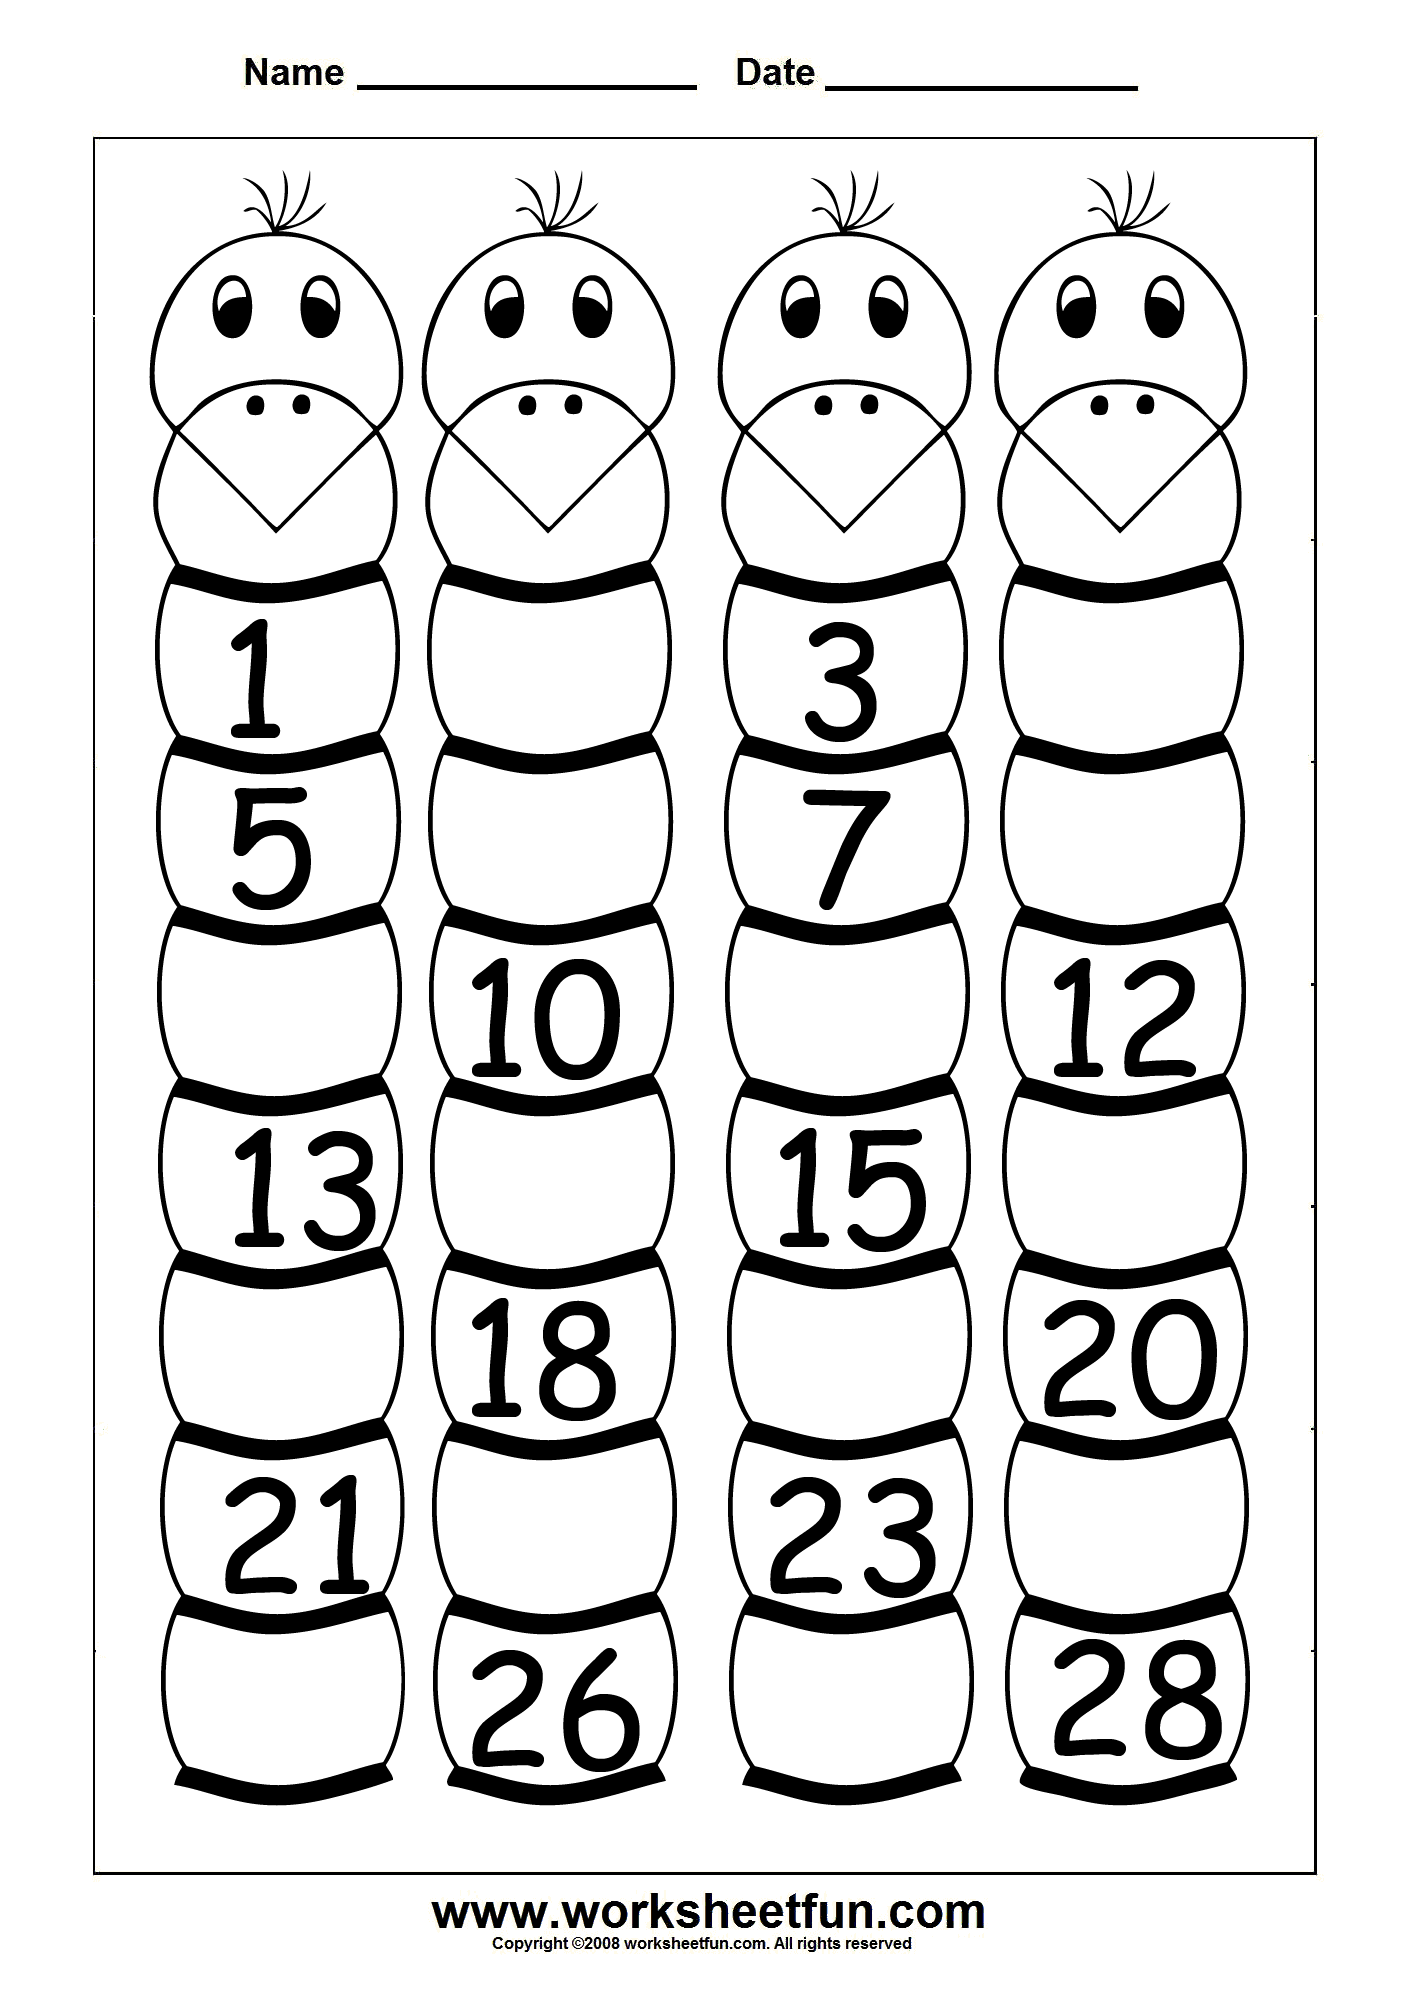 Missing Numbers 1 To 28 Four Worksheets Free Printable Worksheets Worksheetfun